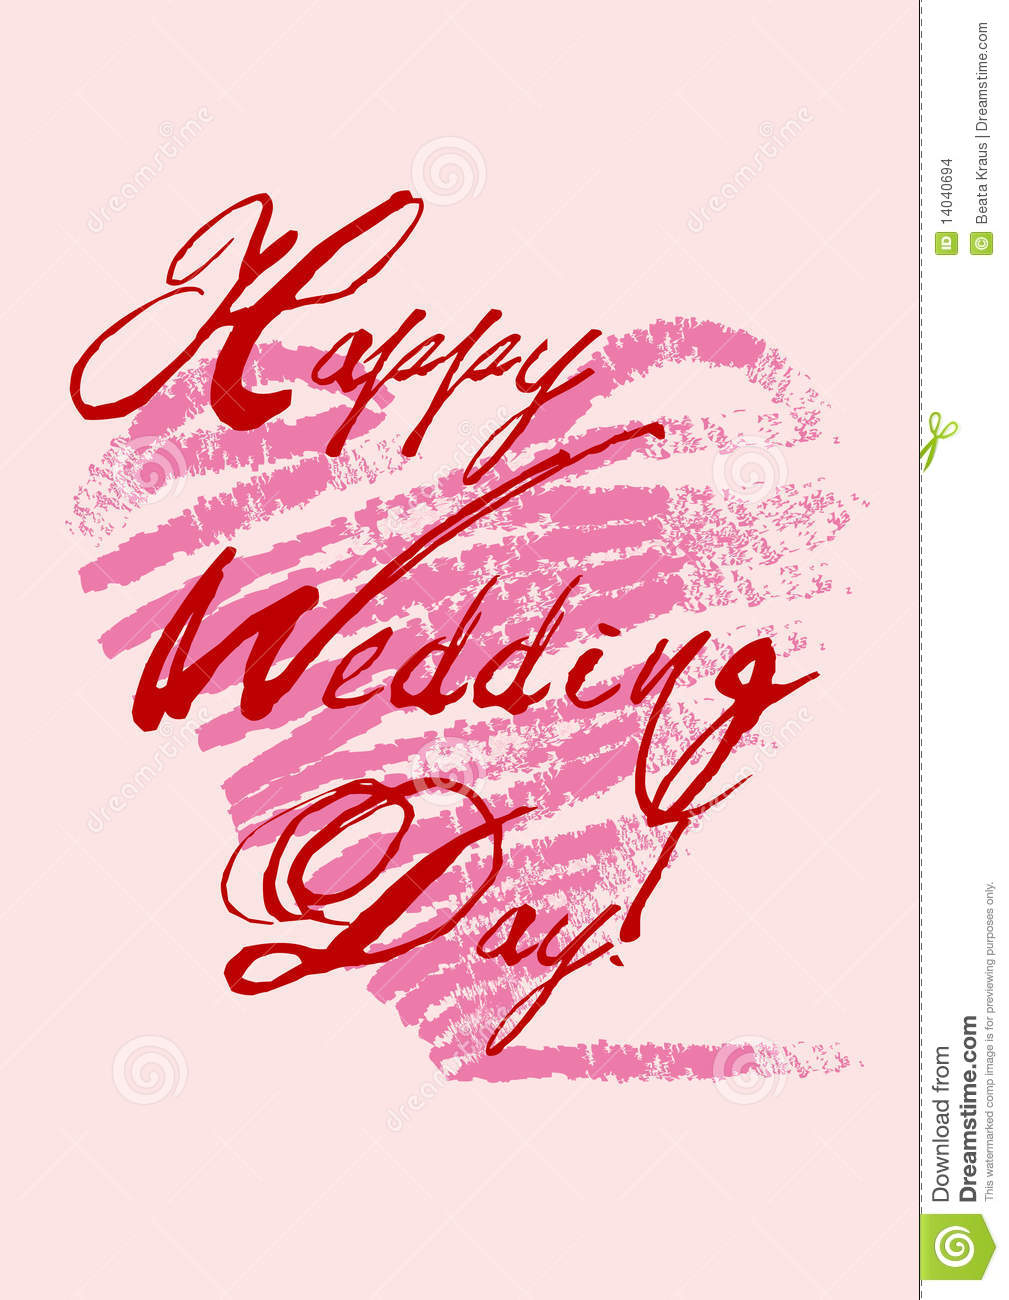 Happy weddings day stock vector illustration of marriage 14040694 happy wedding s day m4hsunfo